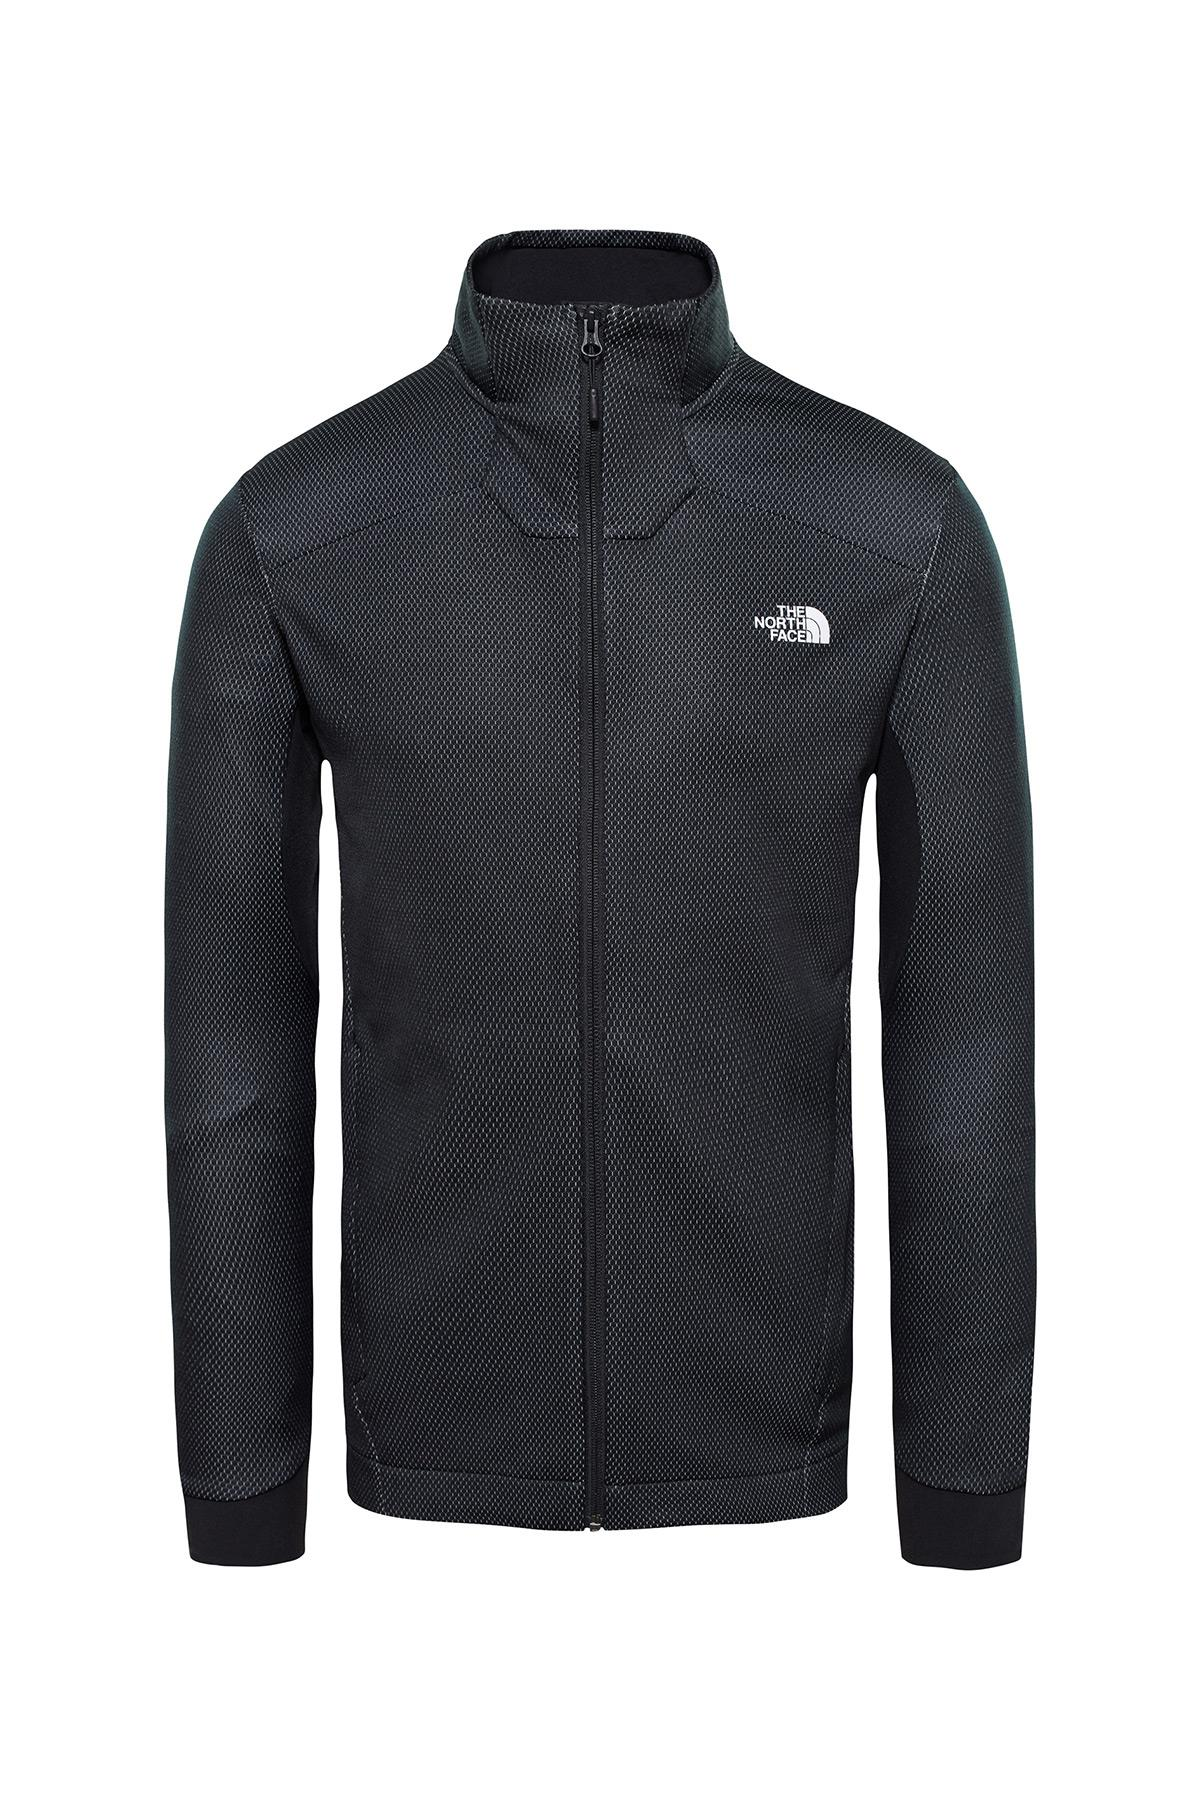 The Northface Erkek Apex Midlayer T93Rzqjk3 Sweatshirt